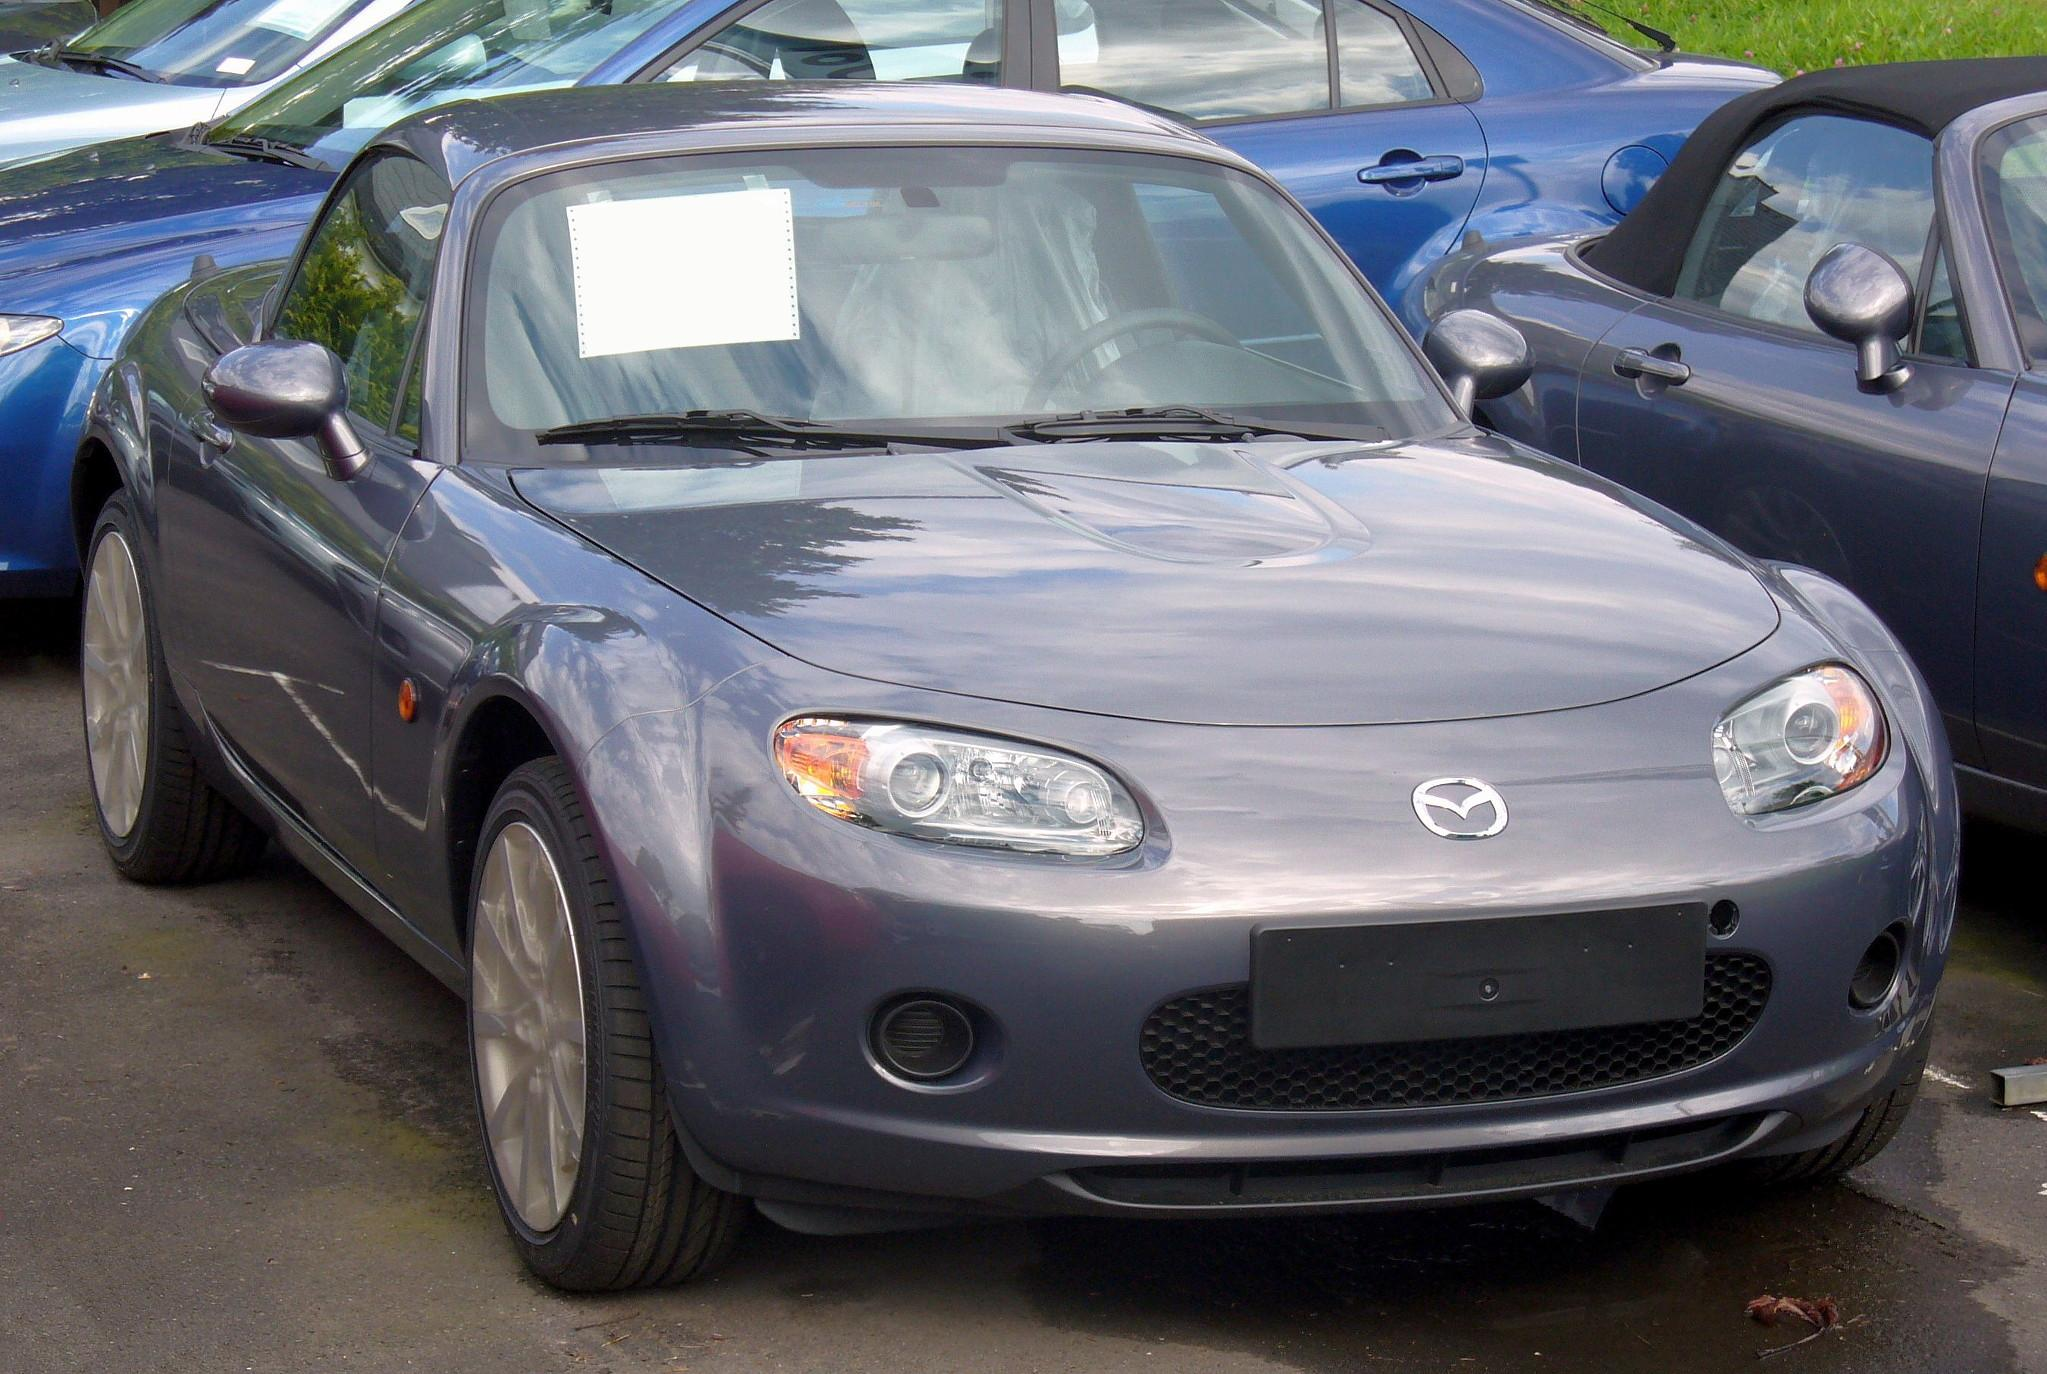 File:Mazda MX-5 Roadster-Coupé.JPG